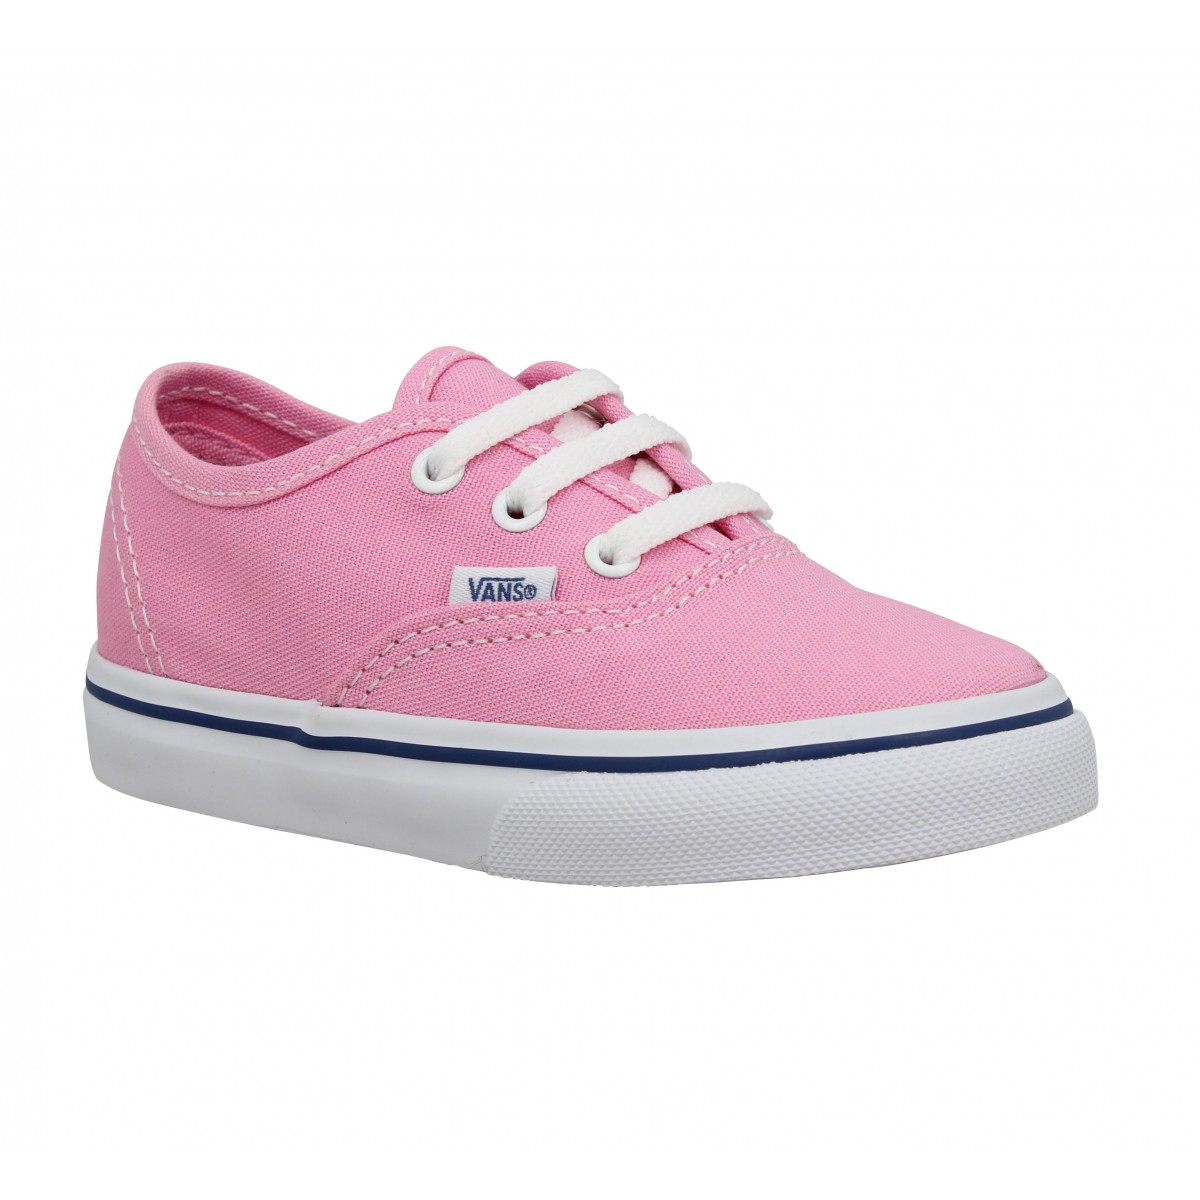 Baskets VANS Authentic toile Enfant Rose